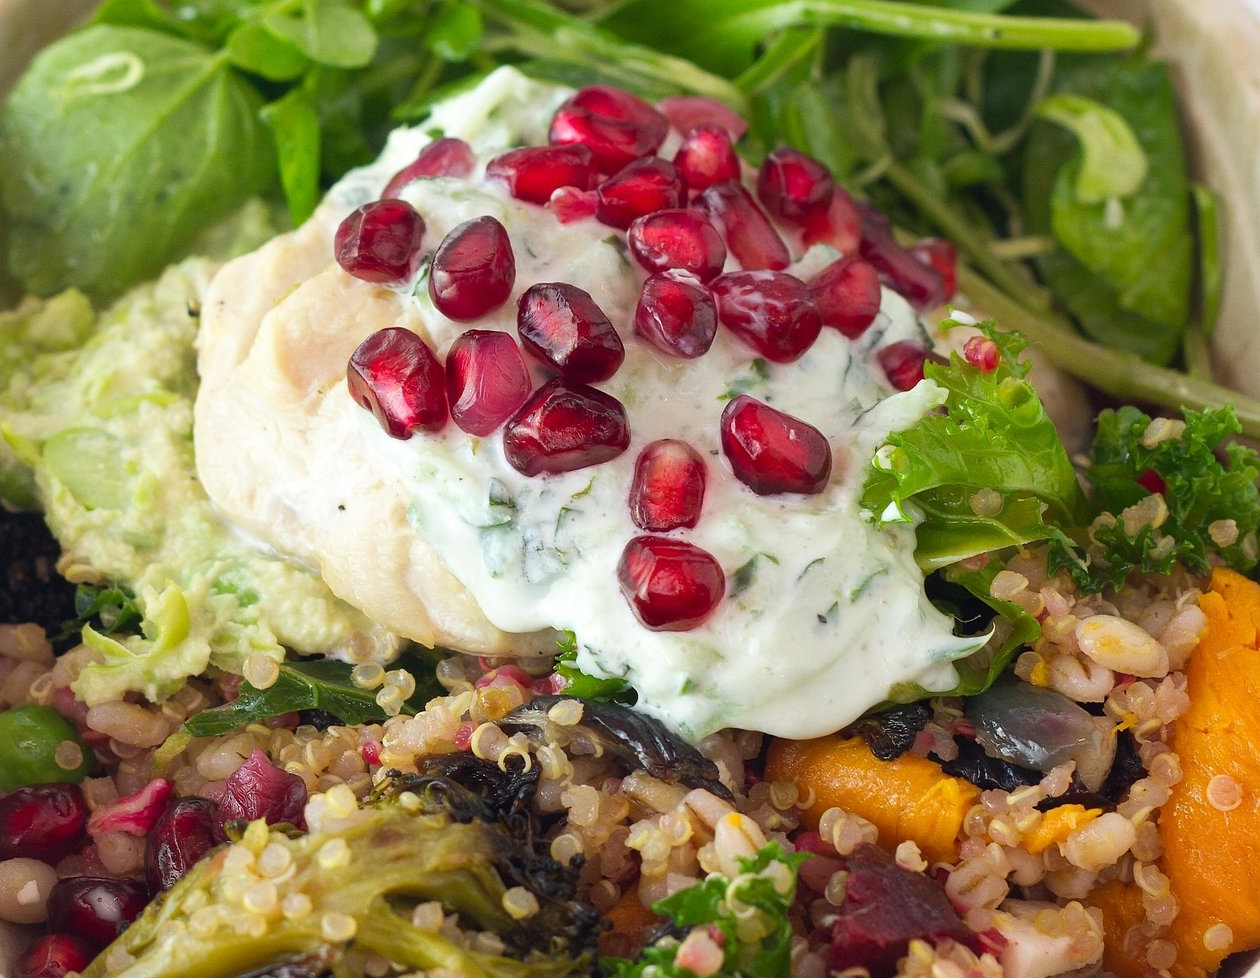 Seeds are popped from our stack of pomegranates when needed. Scattered over handmade mint & cucumber dressing sitting on top of roasted veggies and homemade edamame hummus.